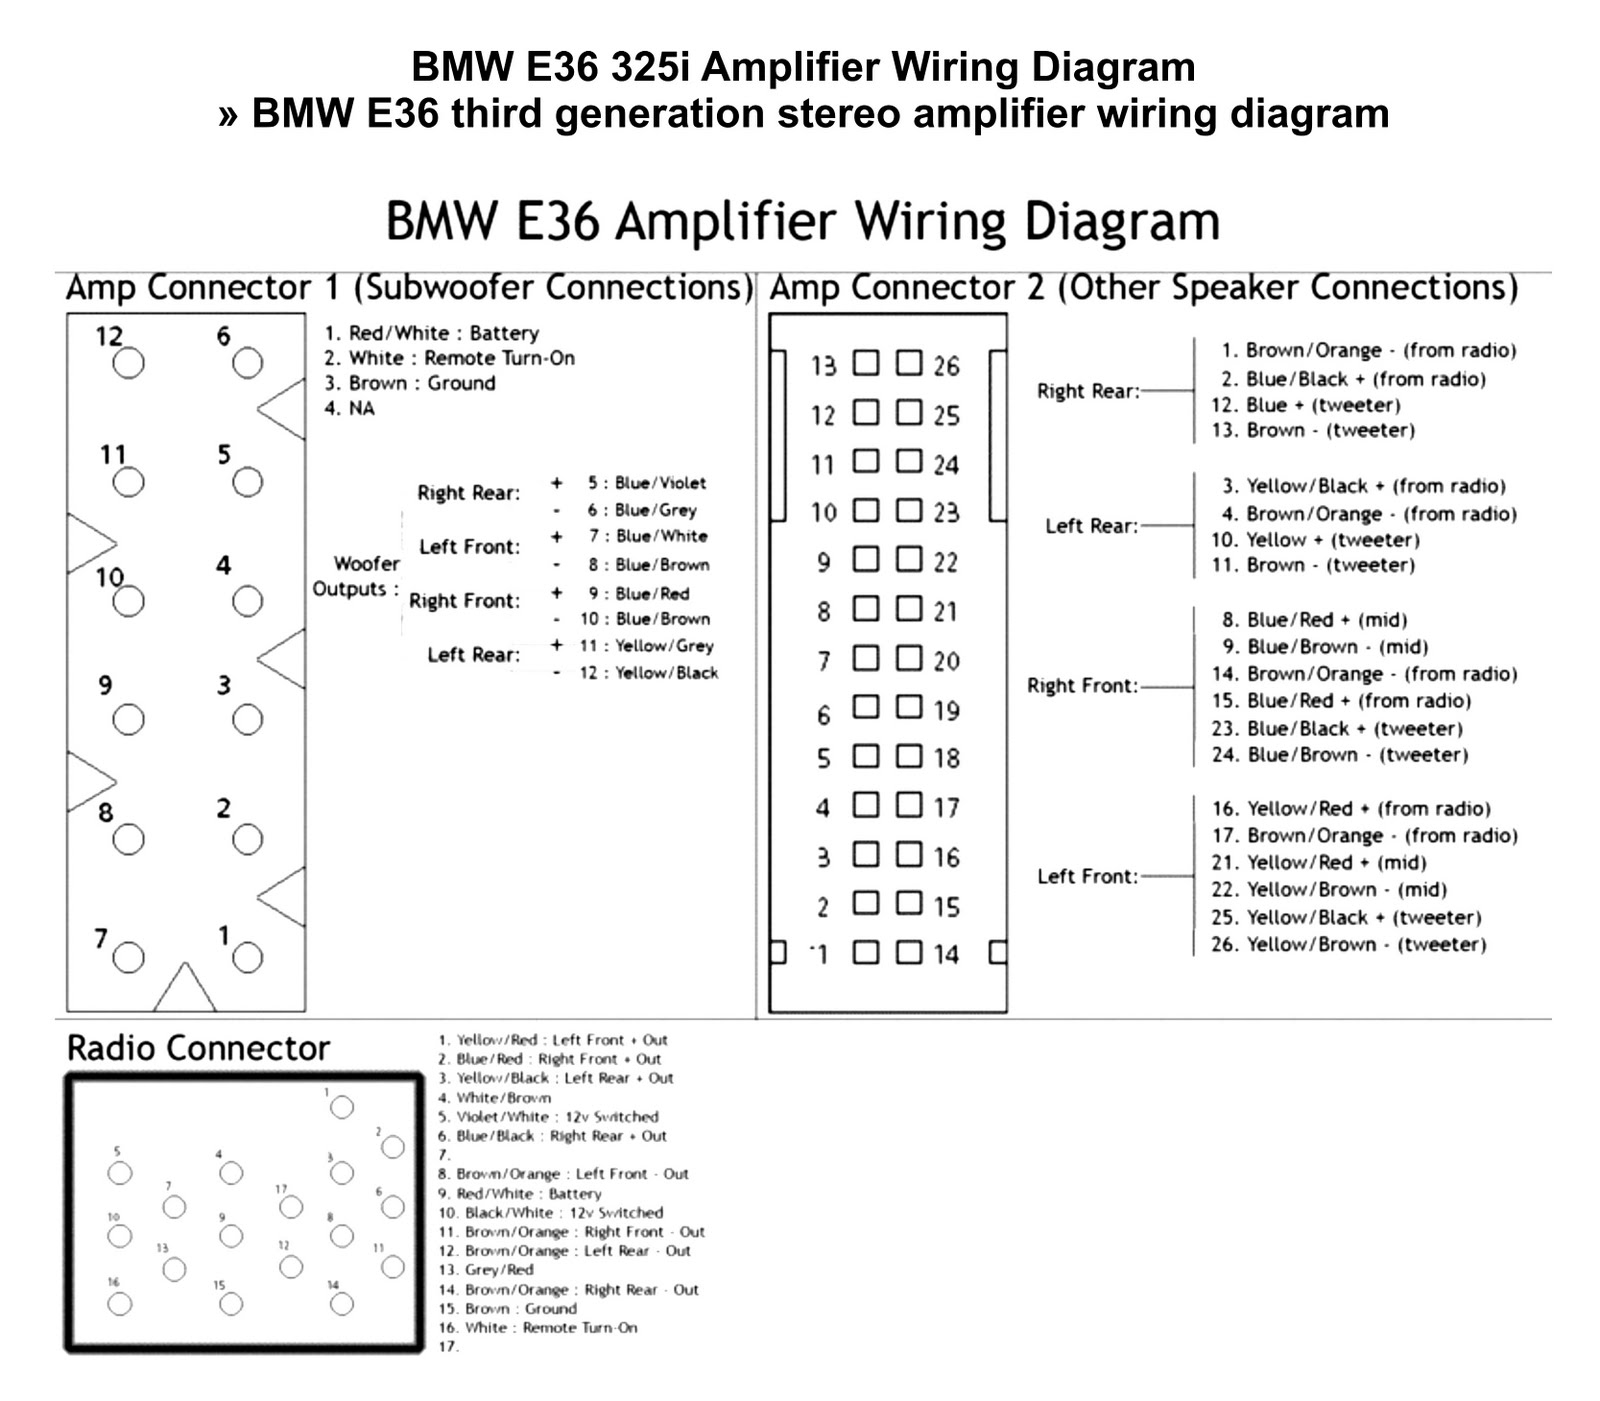 Bmw E36 325I Wiring Diagram from 3.bp.blogspot.com